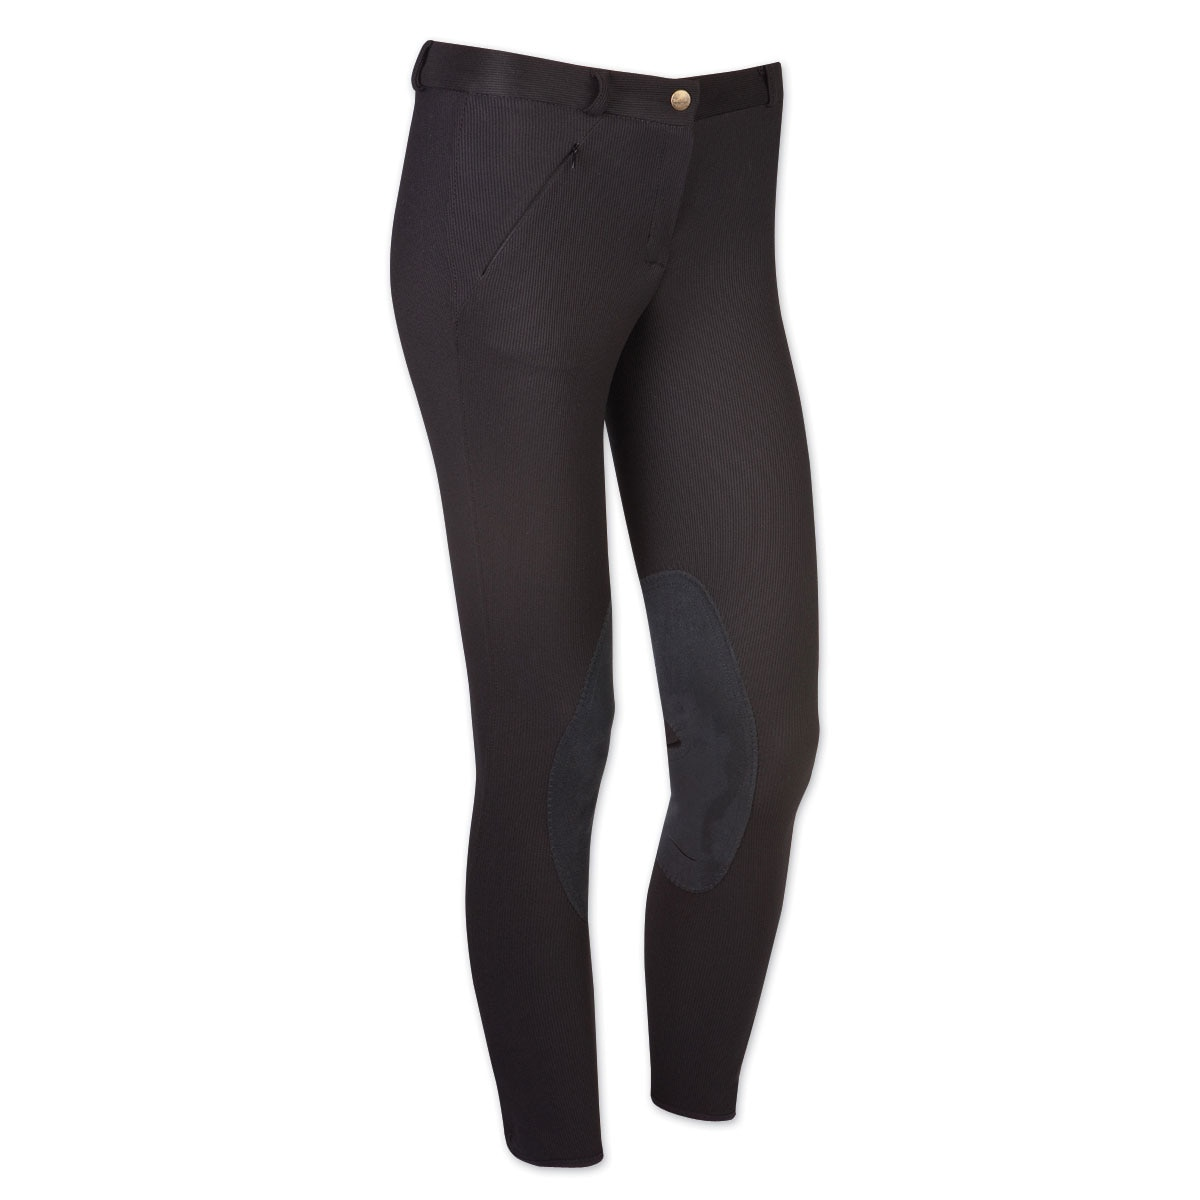 Tuff Rider RIBB Low Rise Knee Patch Breeches